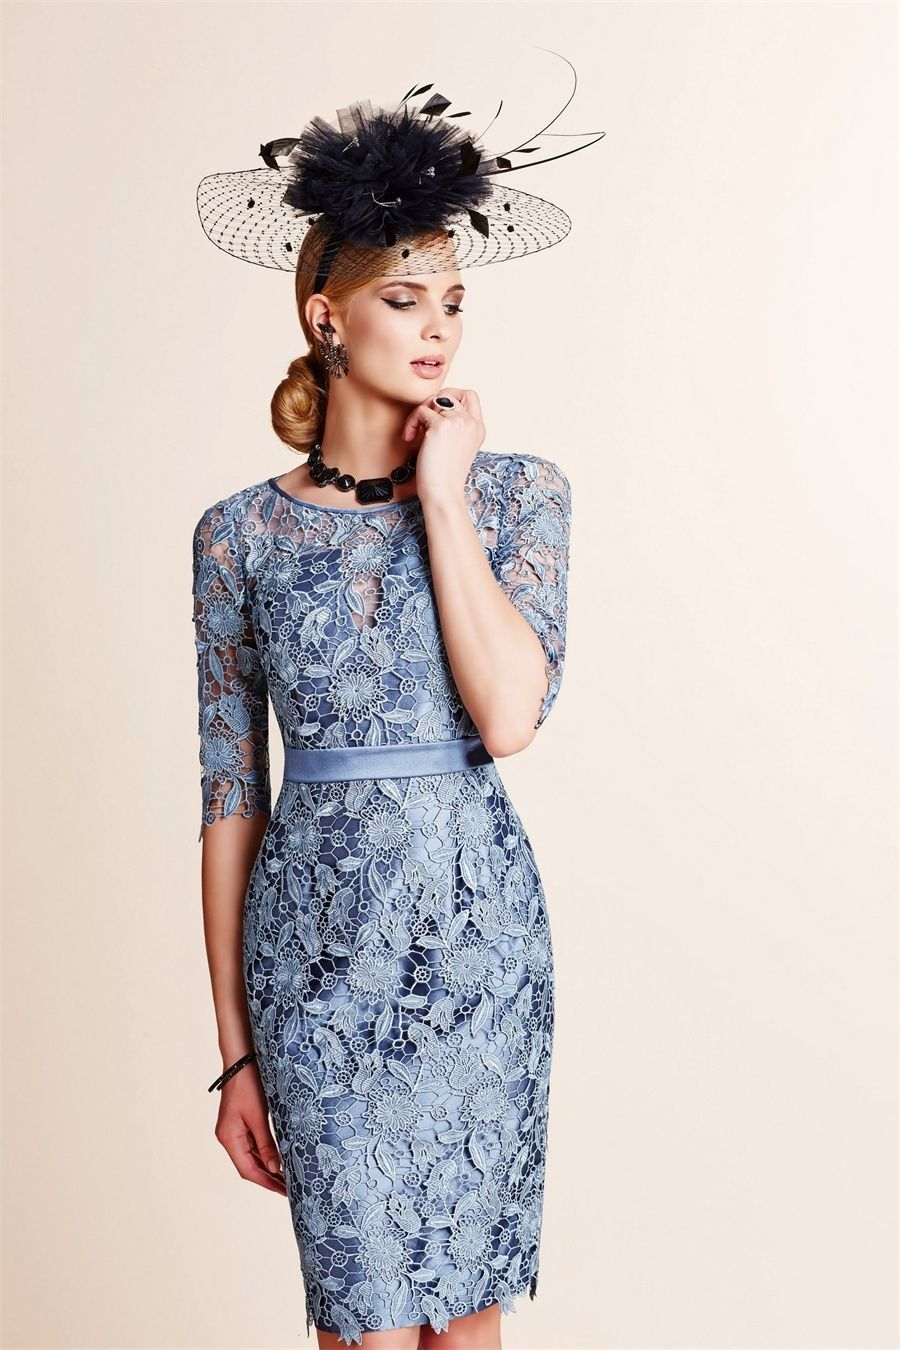 0453d9980cb9 Mother of the Bride Outfits/Dress Rose Blue Lace/Satin Knee Length |  Standard Size and Plus Size